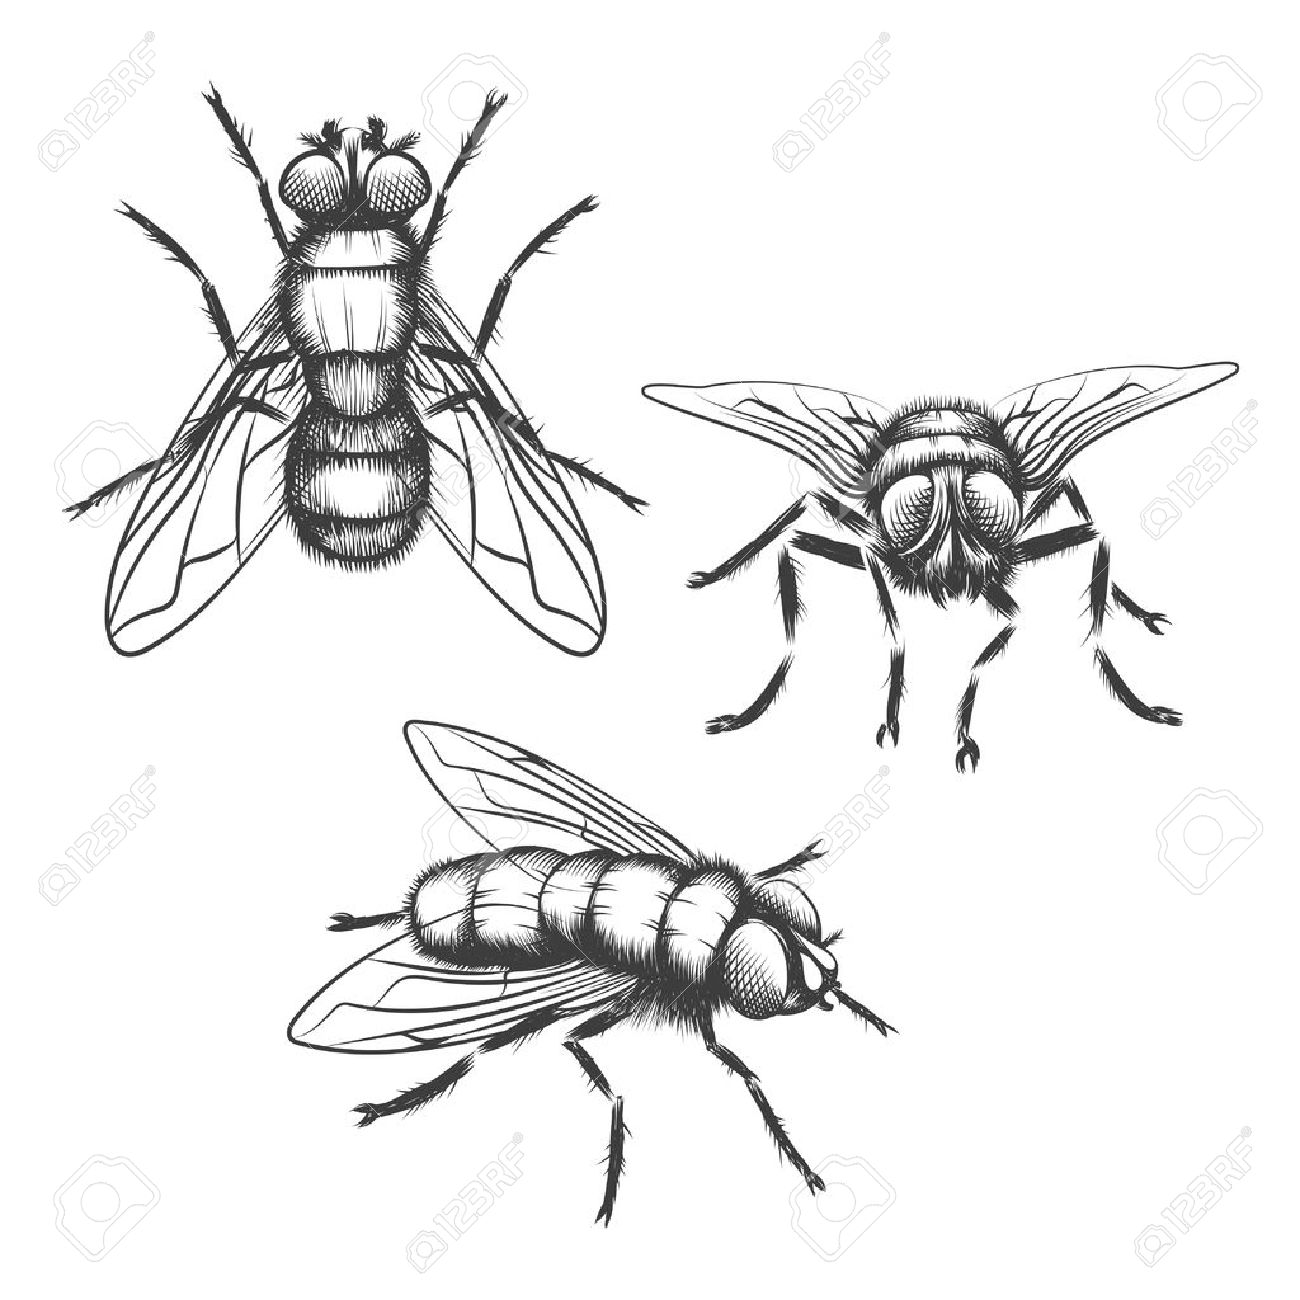 1300x1300 Hand Drawn Flies. Insect With Wing, Biology And Sketch, Vector